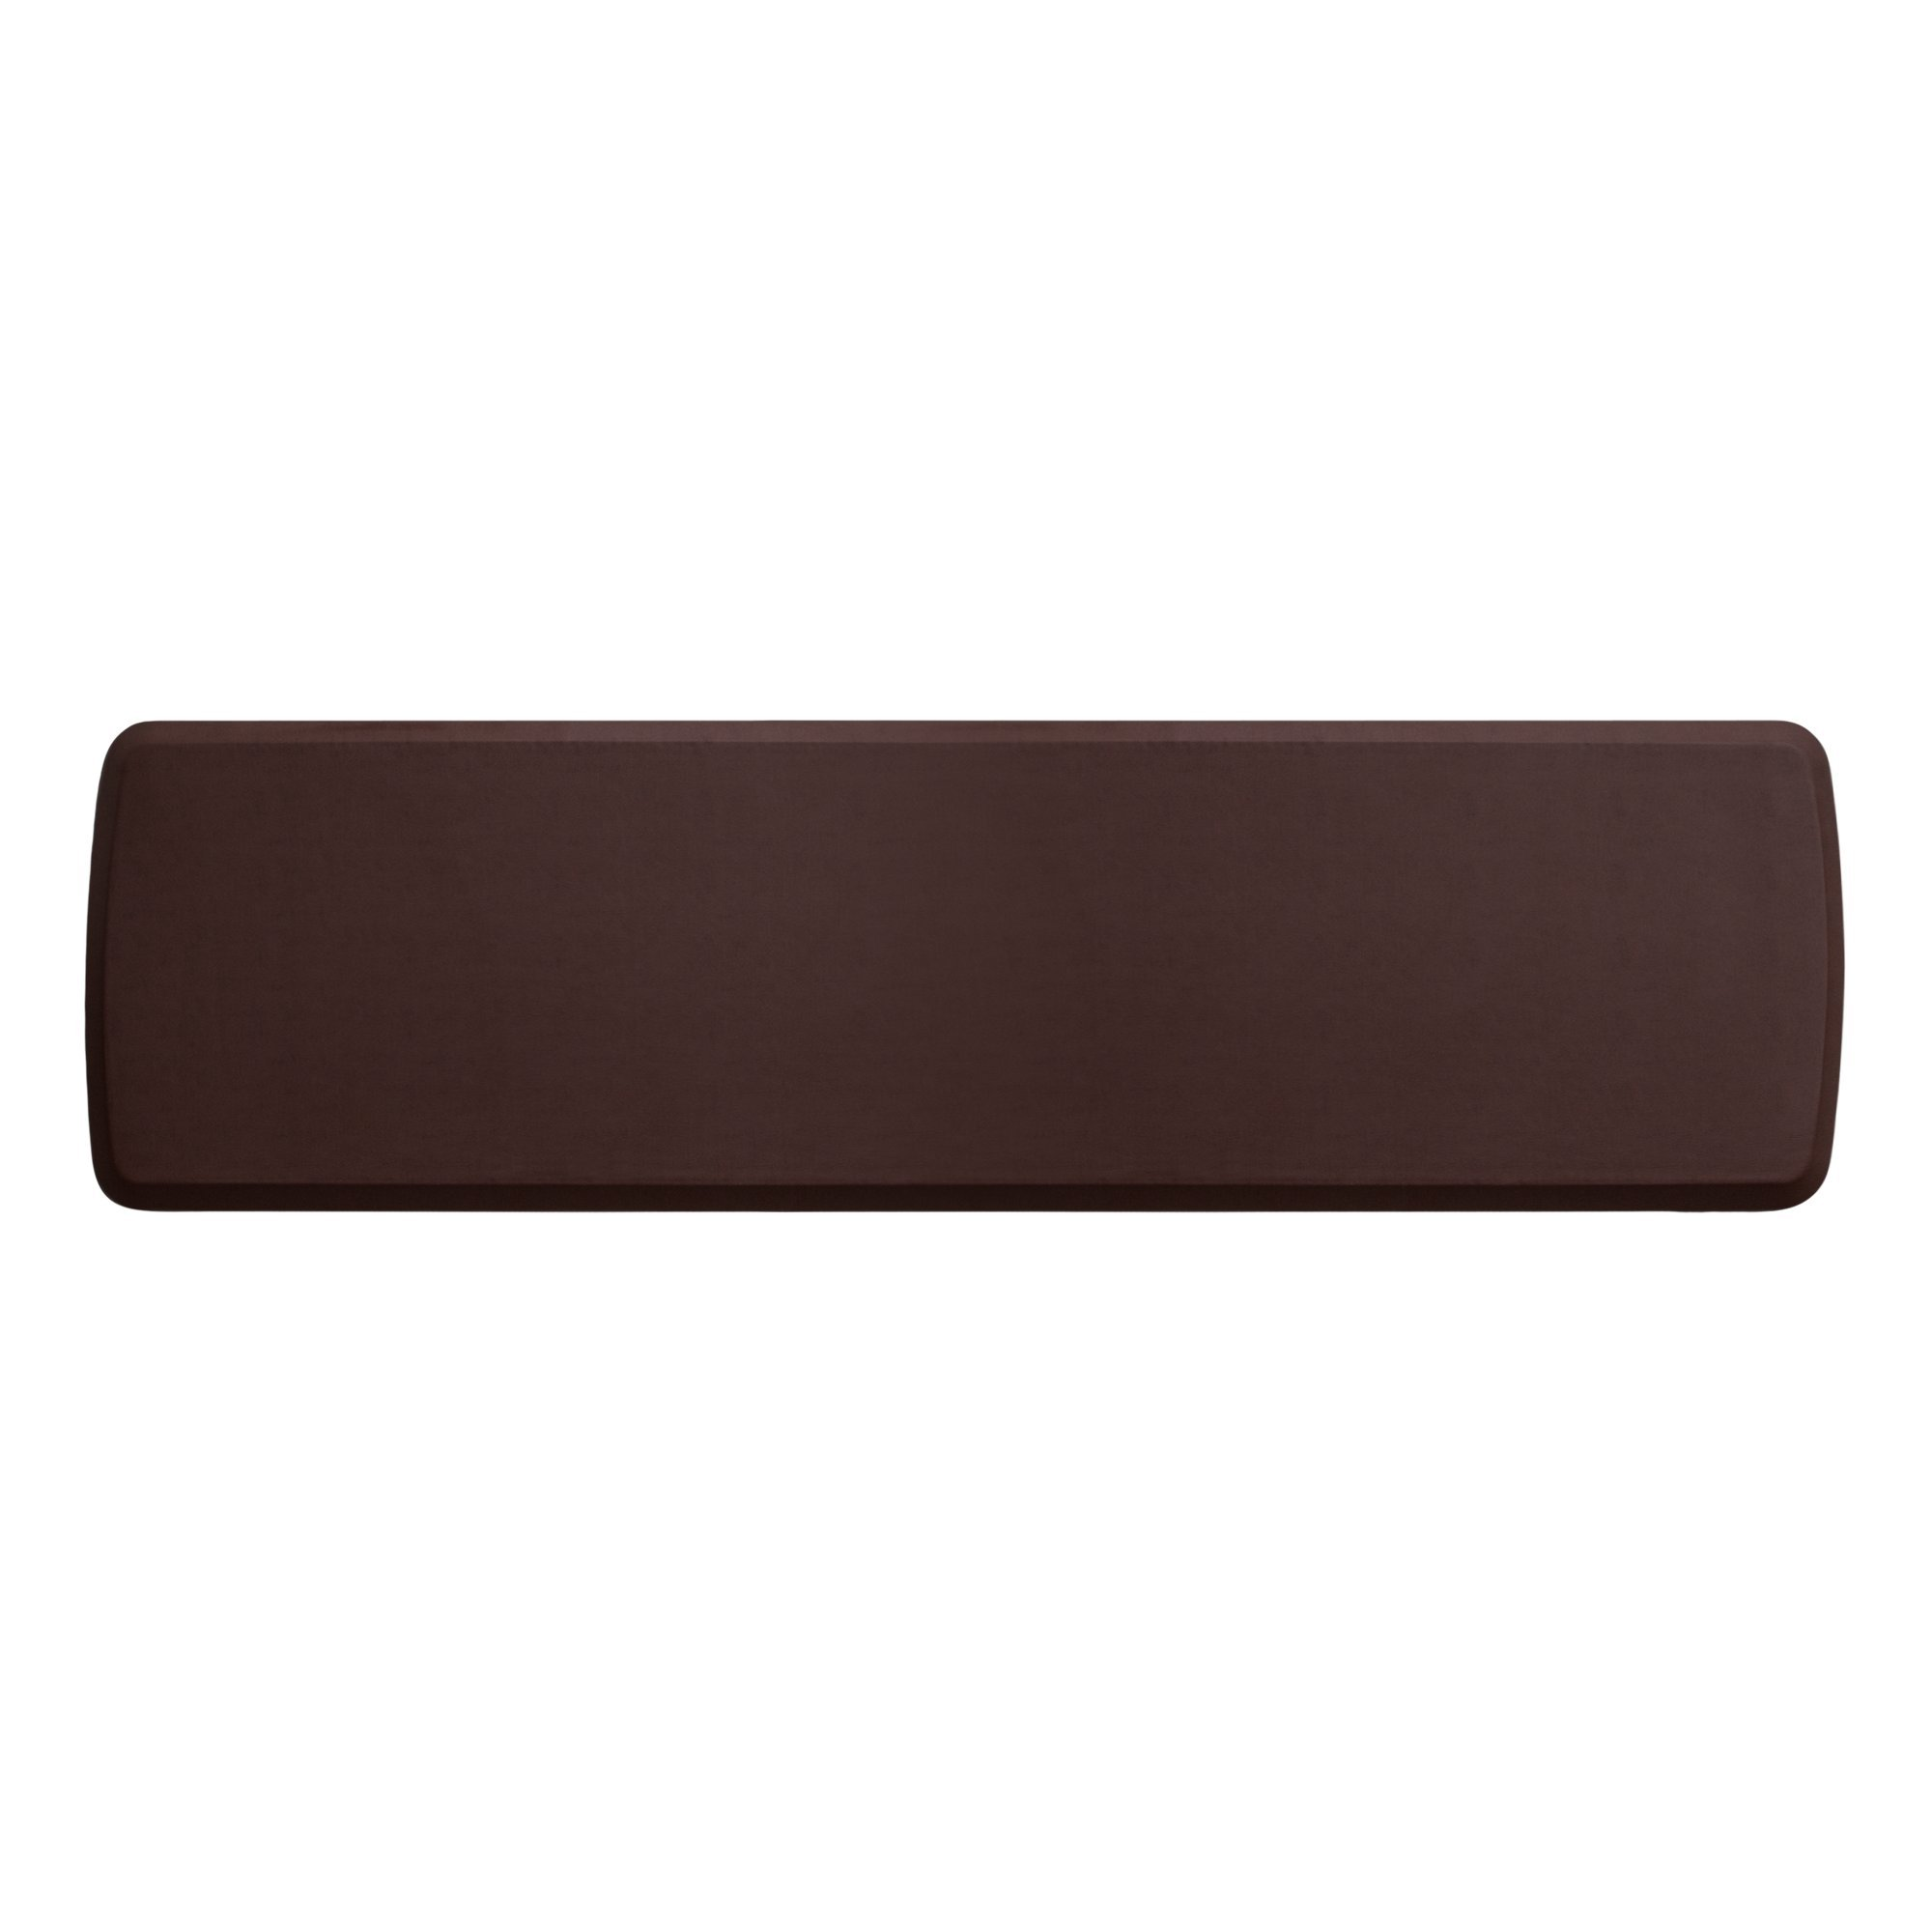 """GelPro Elite Premier Anti-Fatigue Kitchen Comfort Floor Mat, 20x72"""", Vintage Leather Sherry Stain Resistant Surface with Therapeutic Gel and Energy-return Foam for Health and Wellness"""